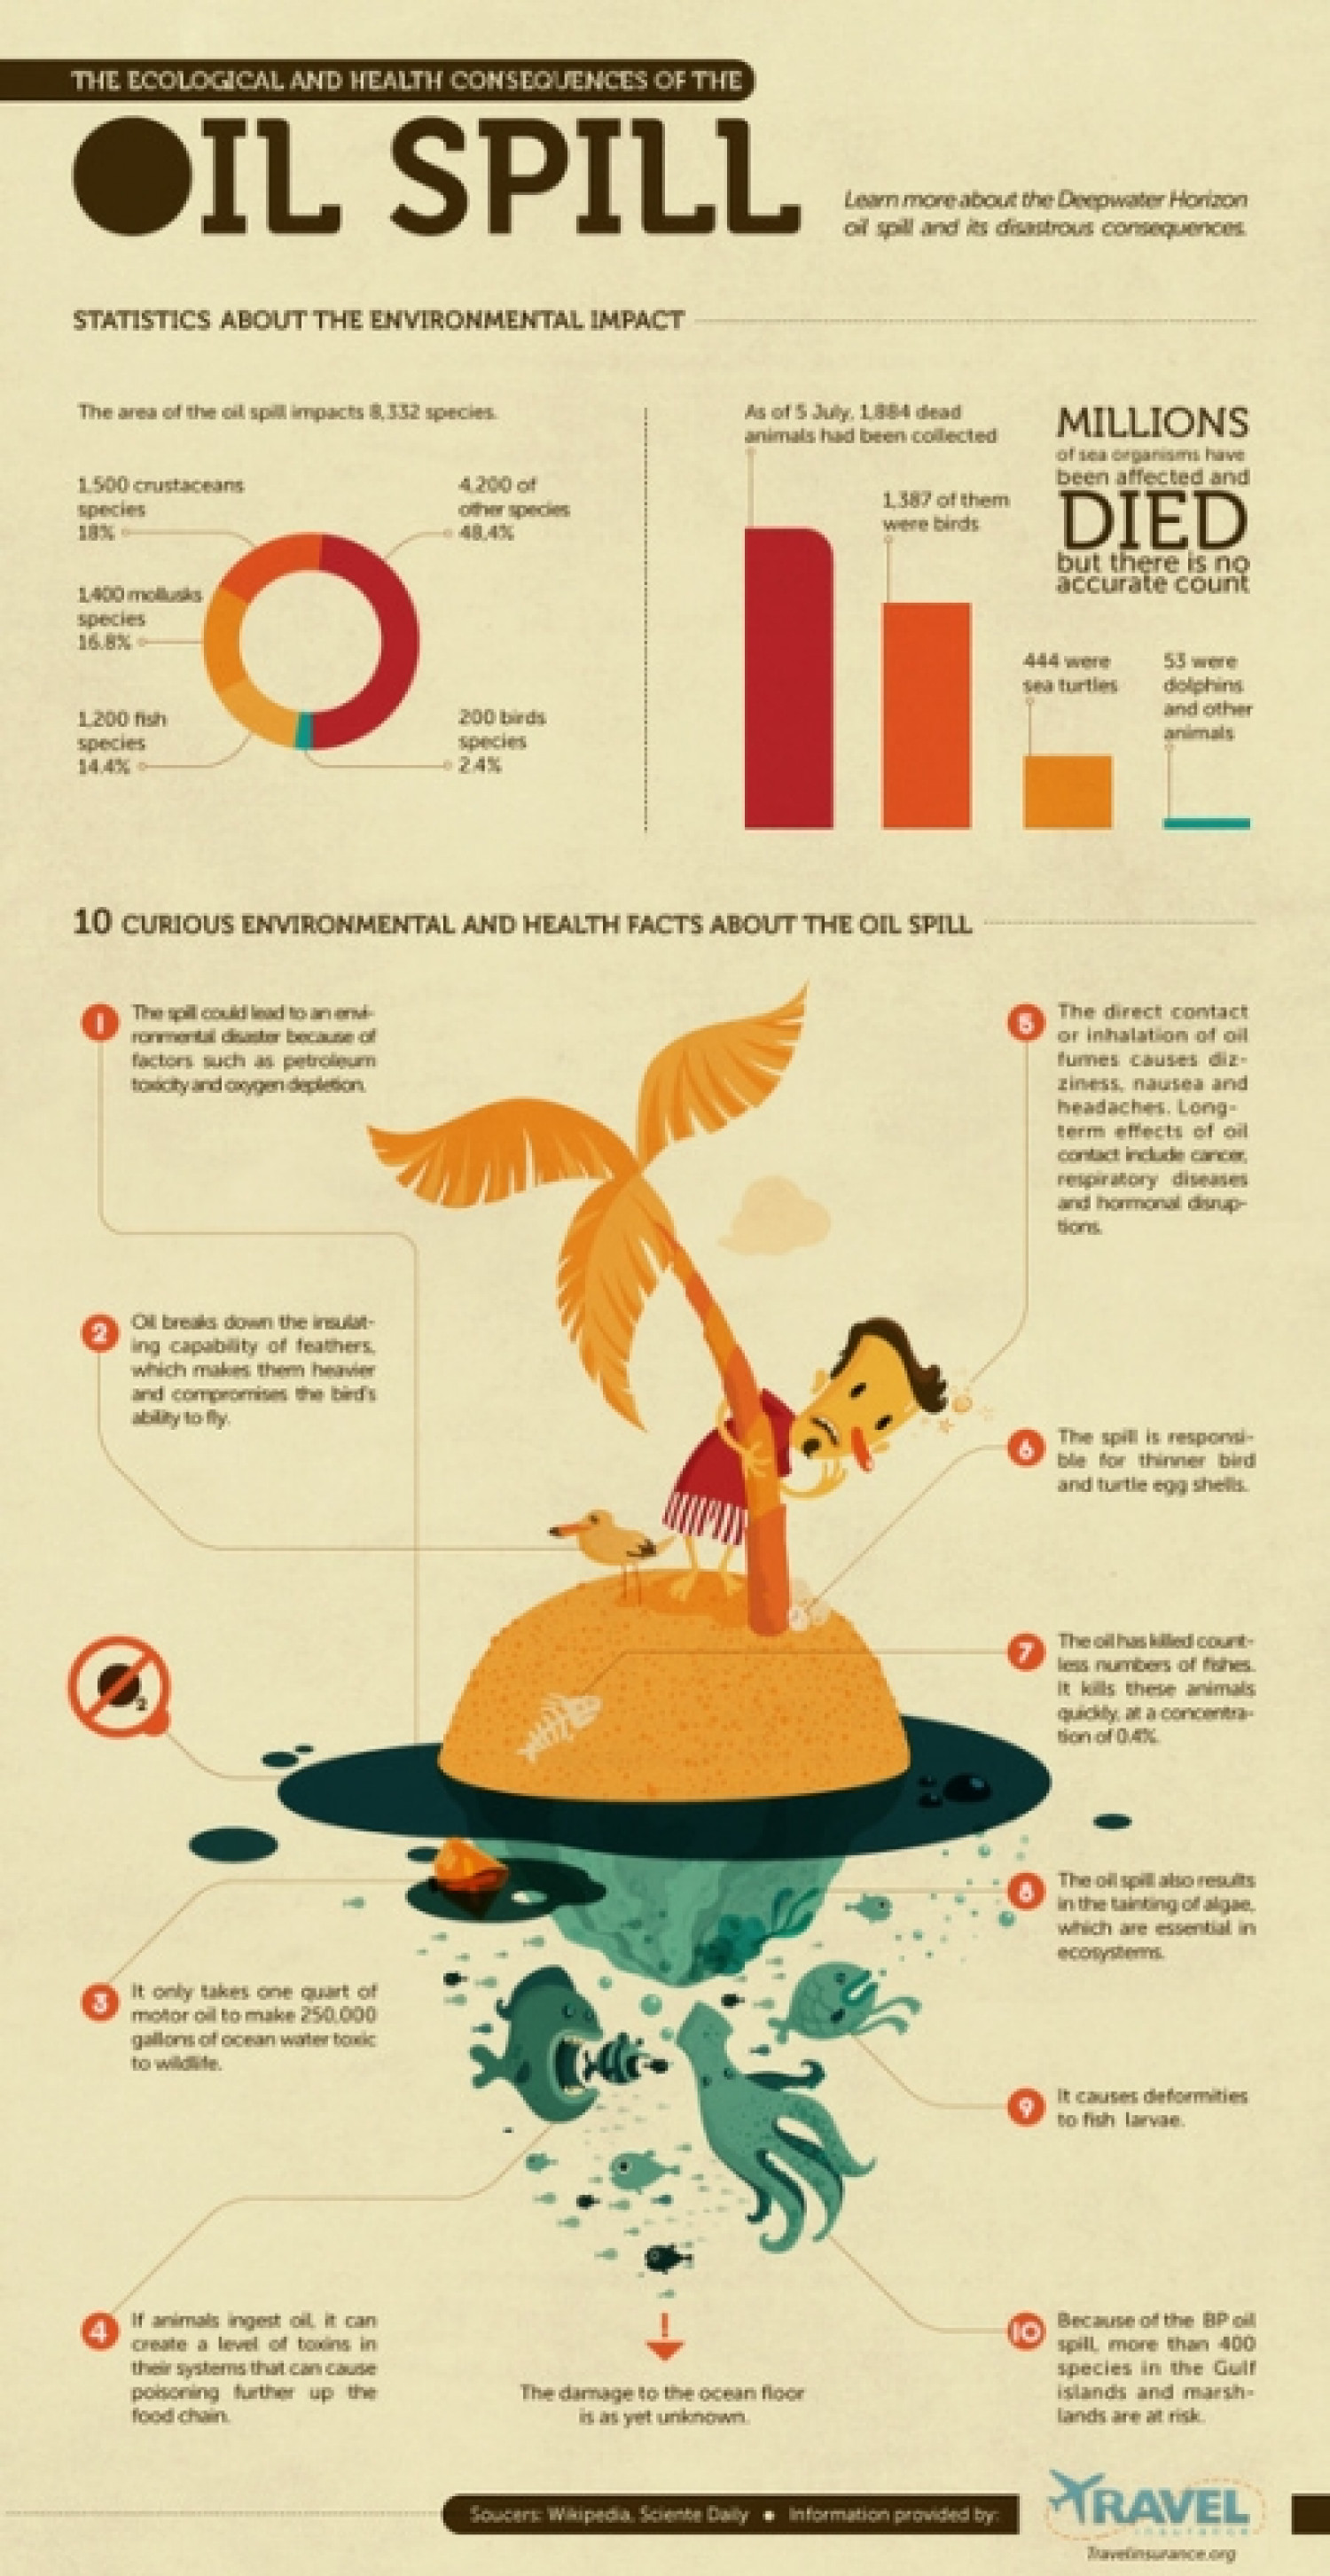 The Ecological and Health Consequences of the Oil Spill Infographic